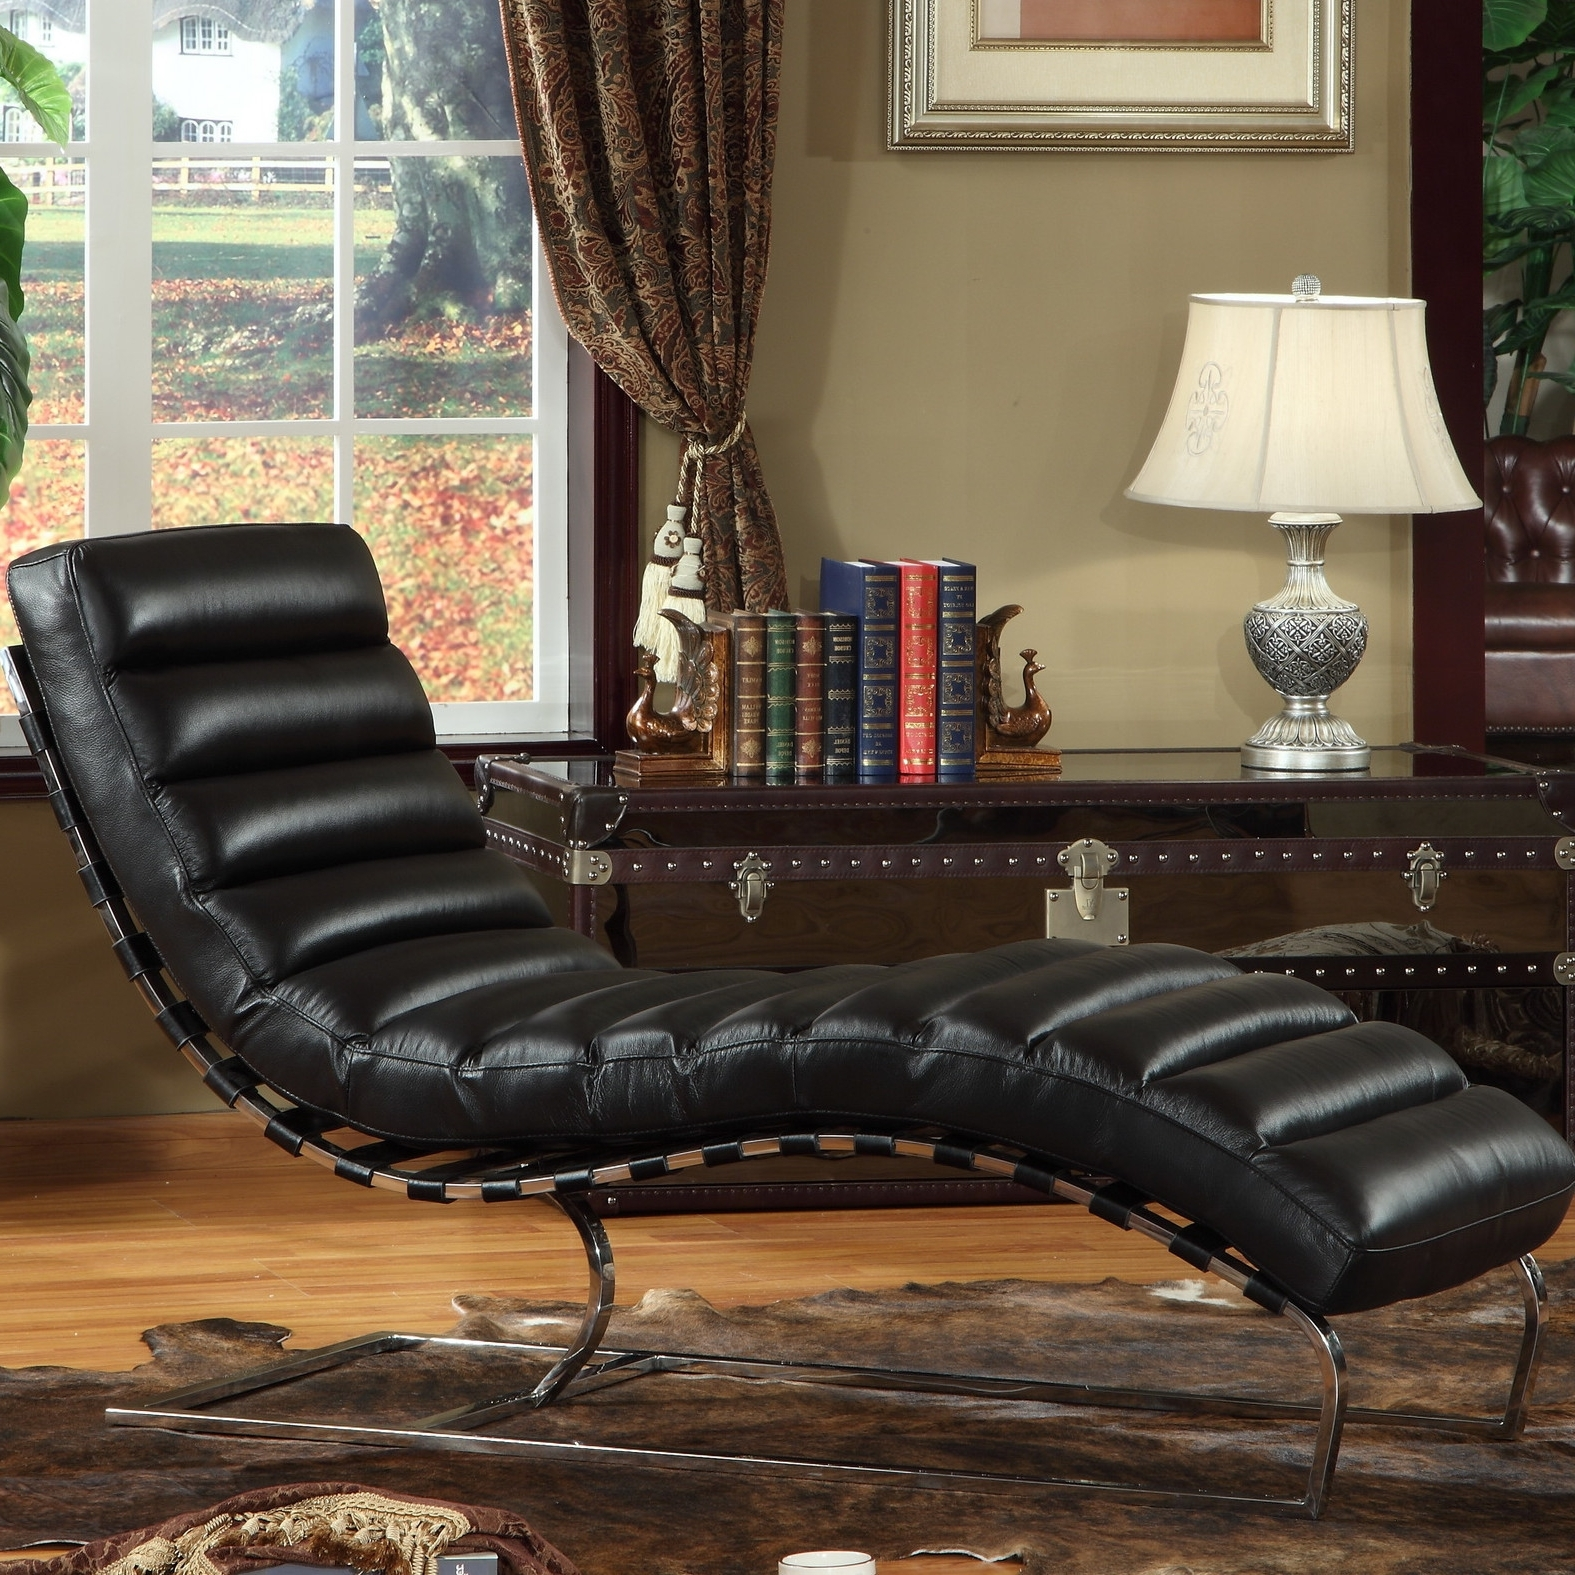 Leather Chaises With Best And Newest Top Leather Chaise Lounge Chair — Bed And Shower : Repair A (View 5 of 15)